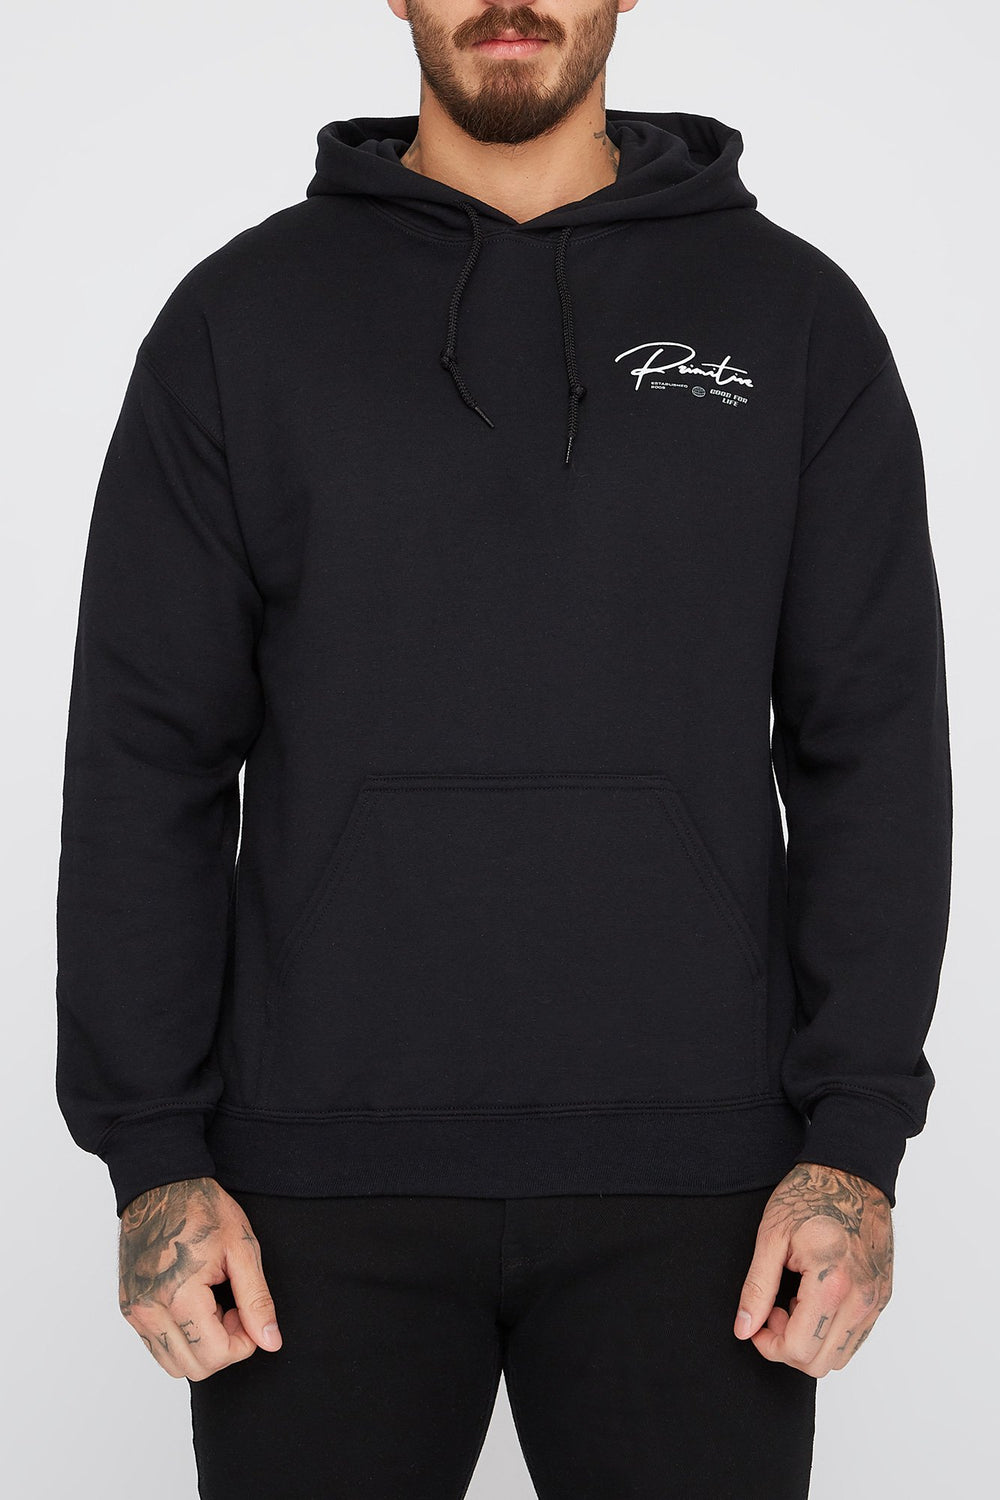 Primitive Mens No Lies Hoodie Black